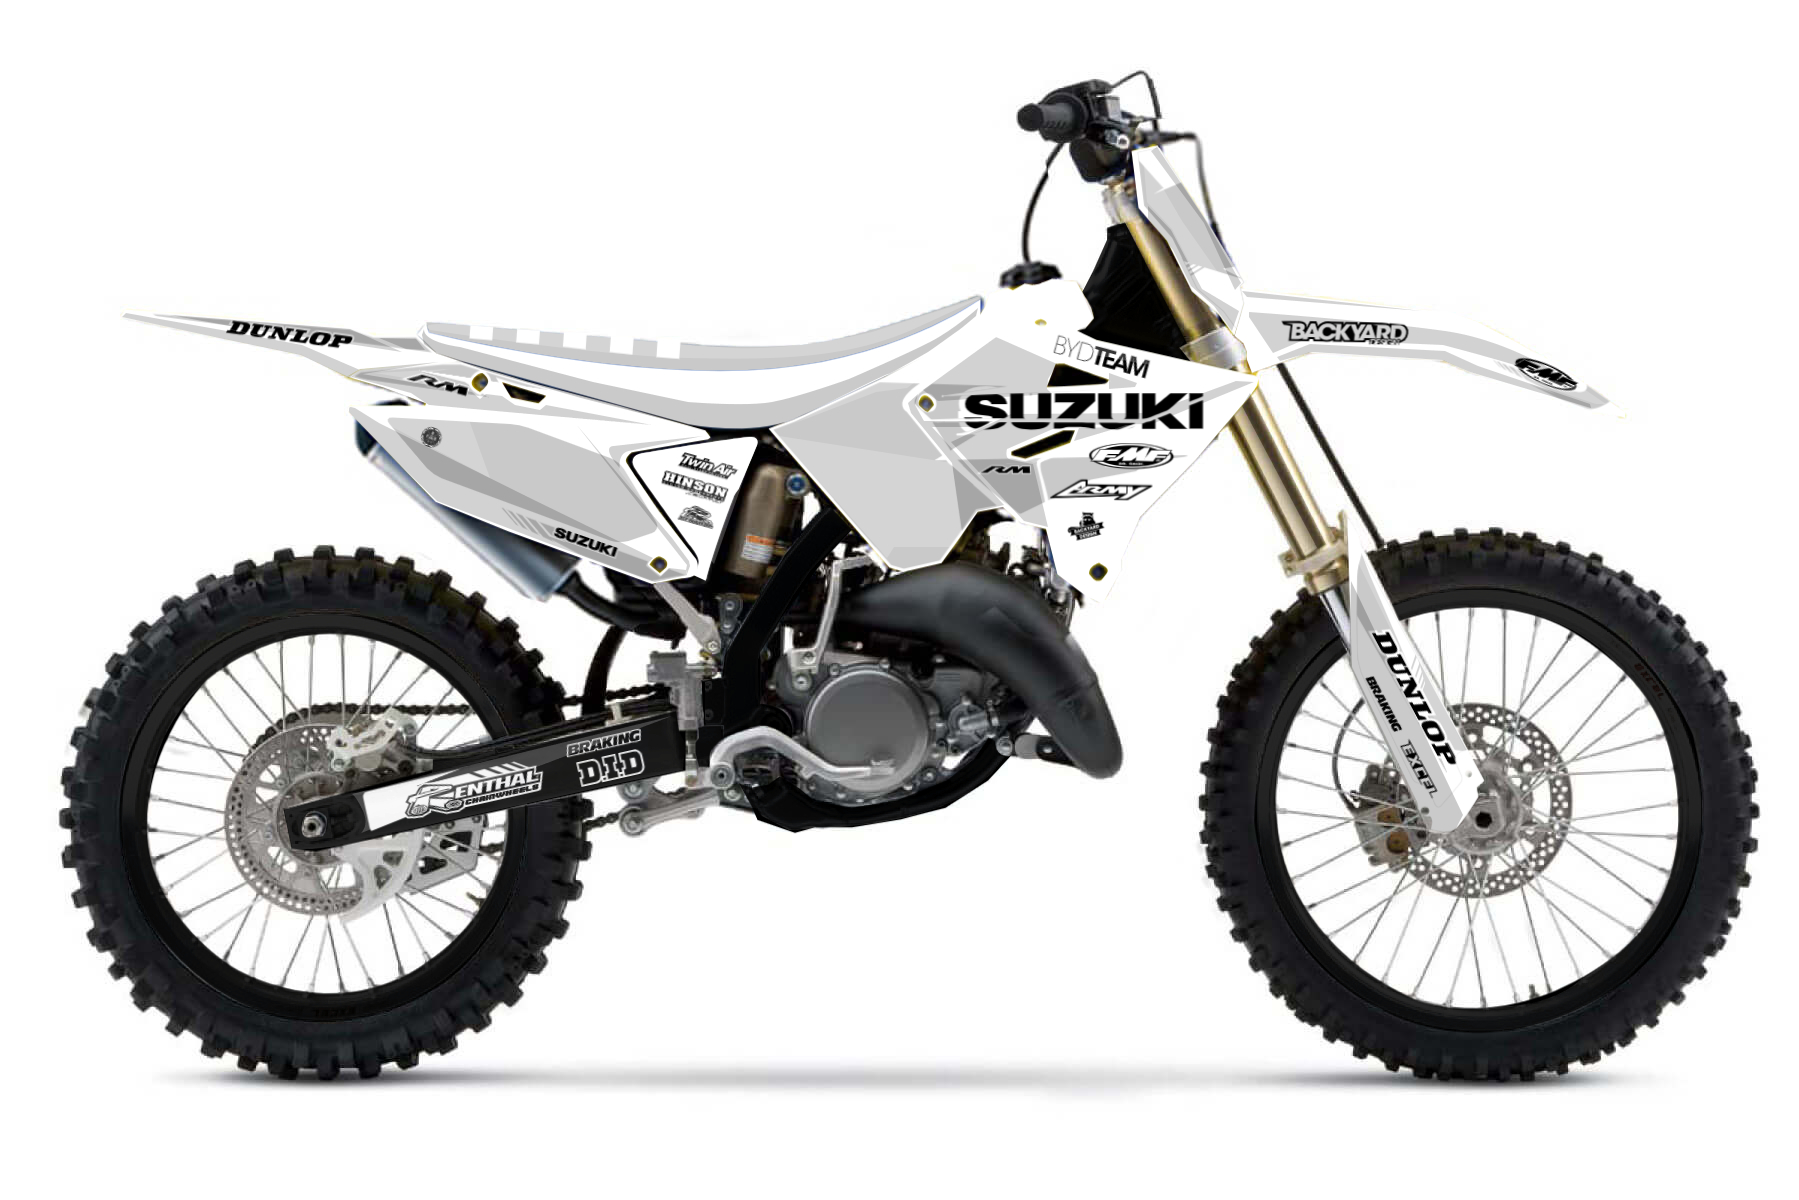 Suzuki RM125 Polisport Restyle MX Graphic Kits  You redesigned your Suzuki RM125 with the Polisport restyle kit? We deliver you the right designs to create your very own graphic kit for your restyled bike.